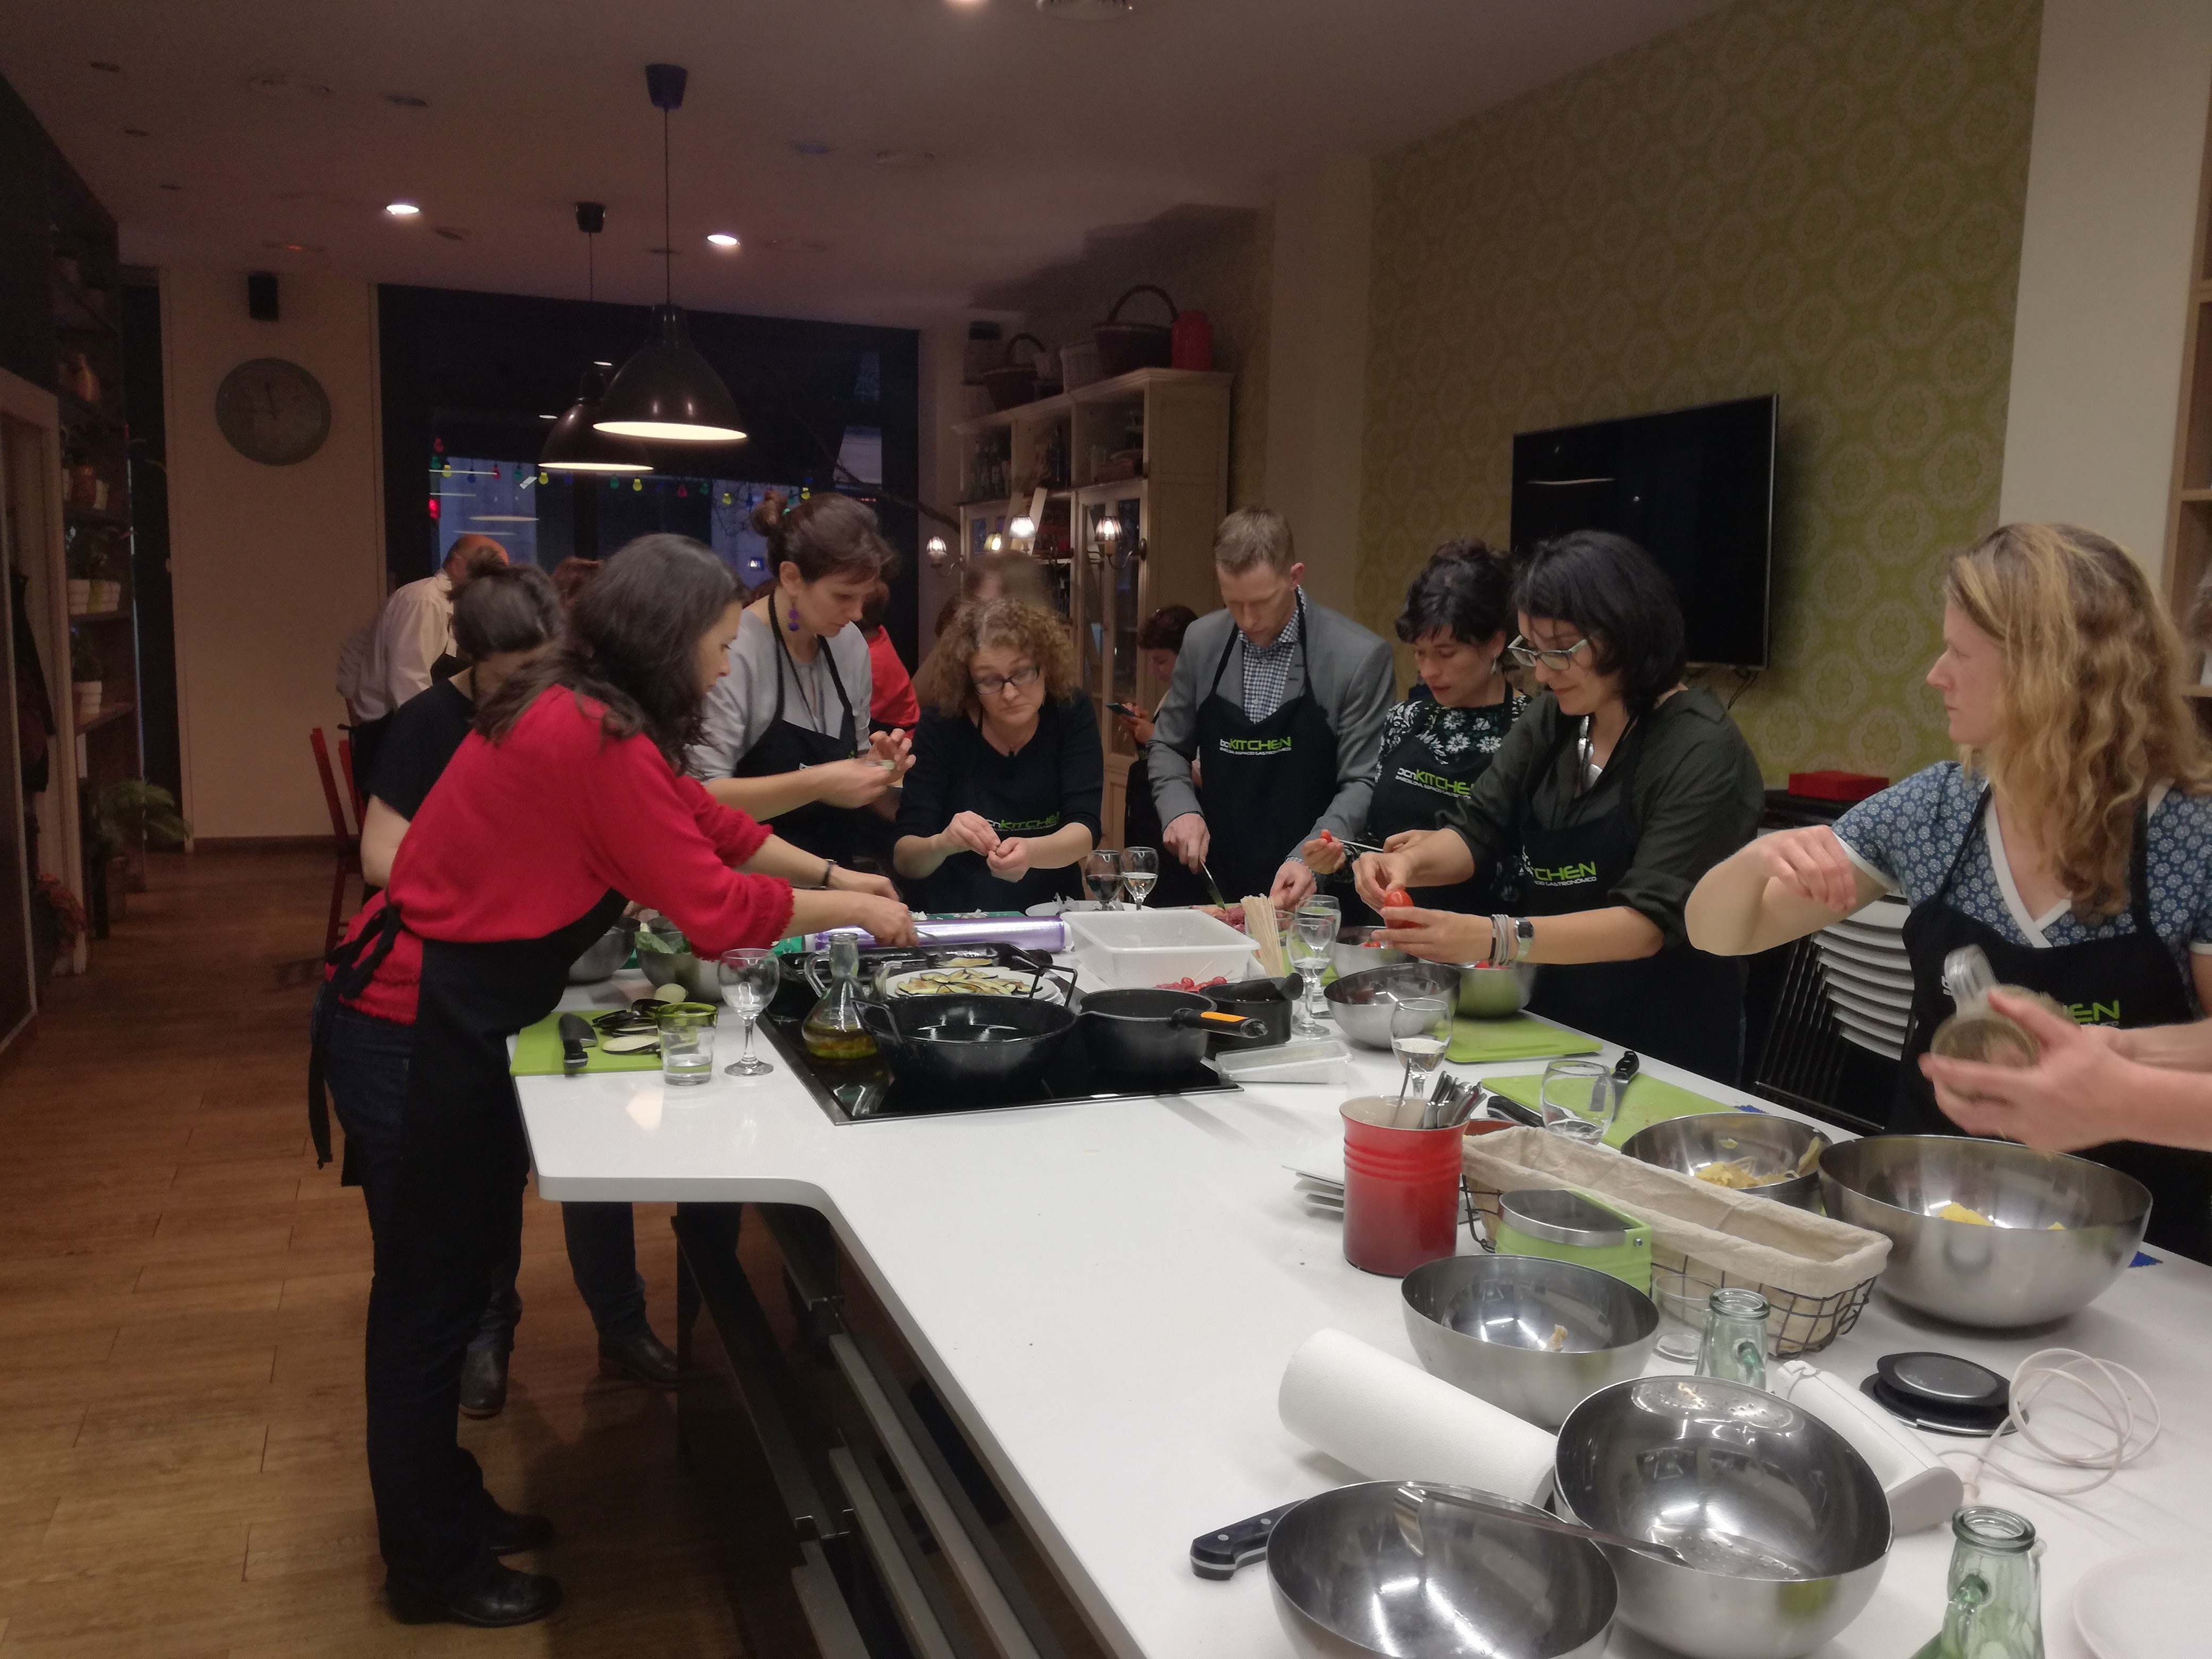 Members of the ORION project team pco-creating tapas at bcnKitchen